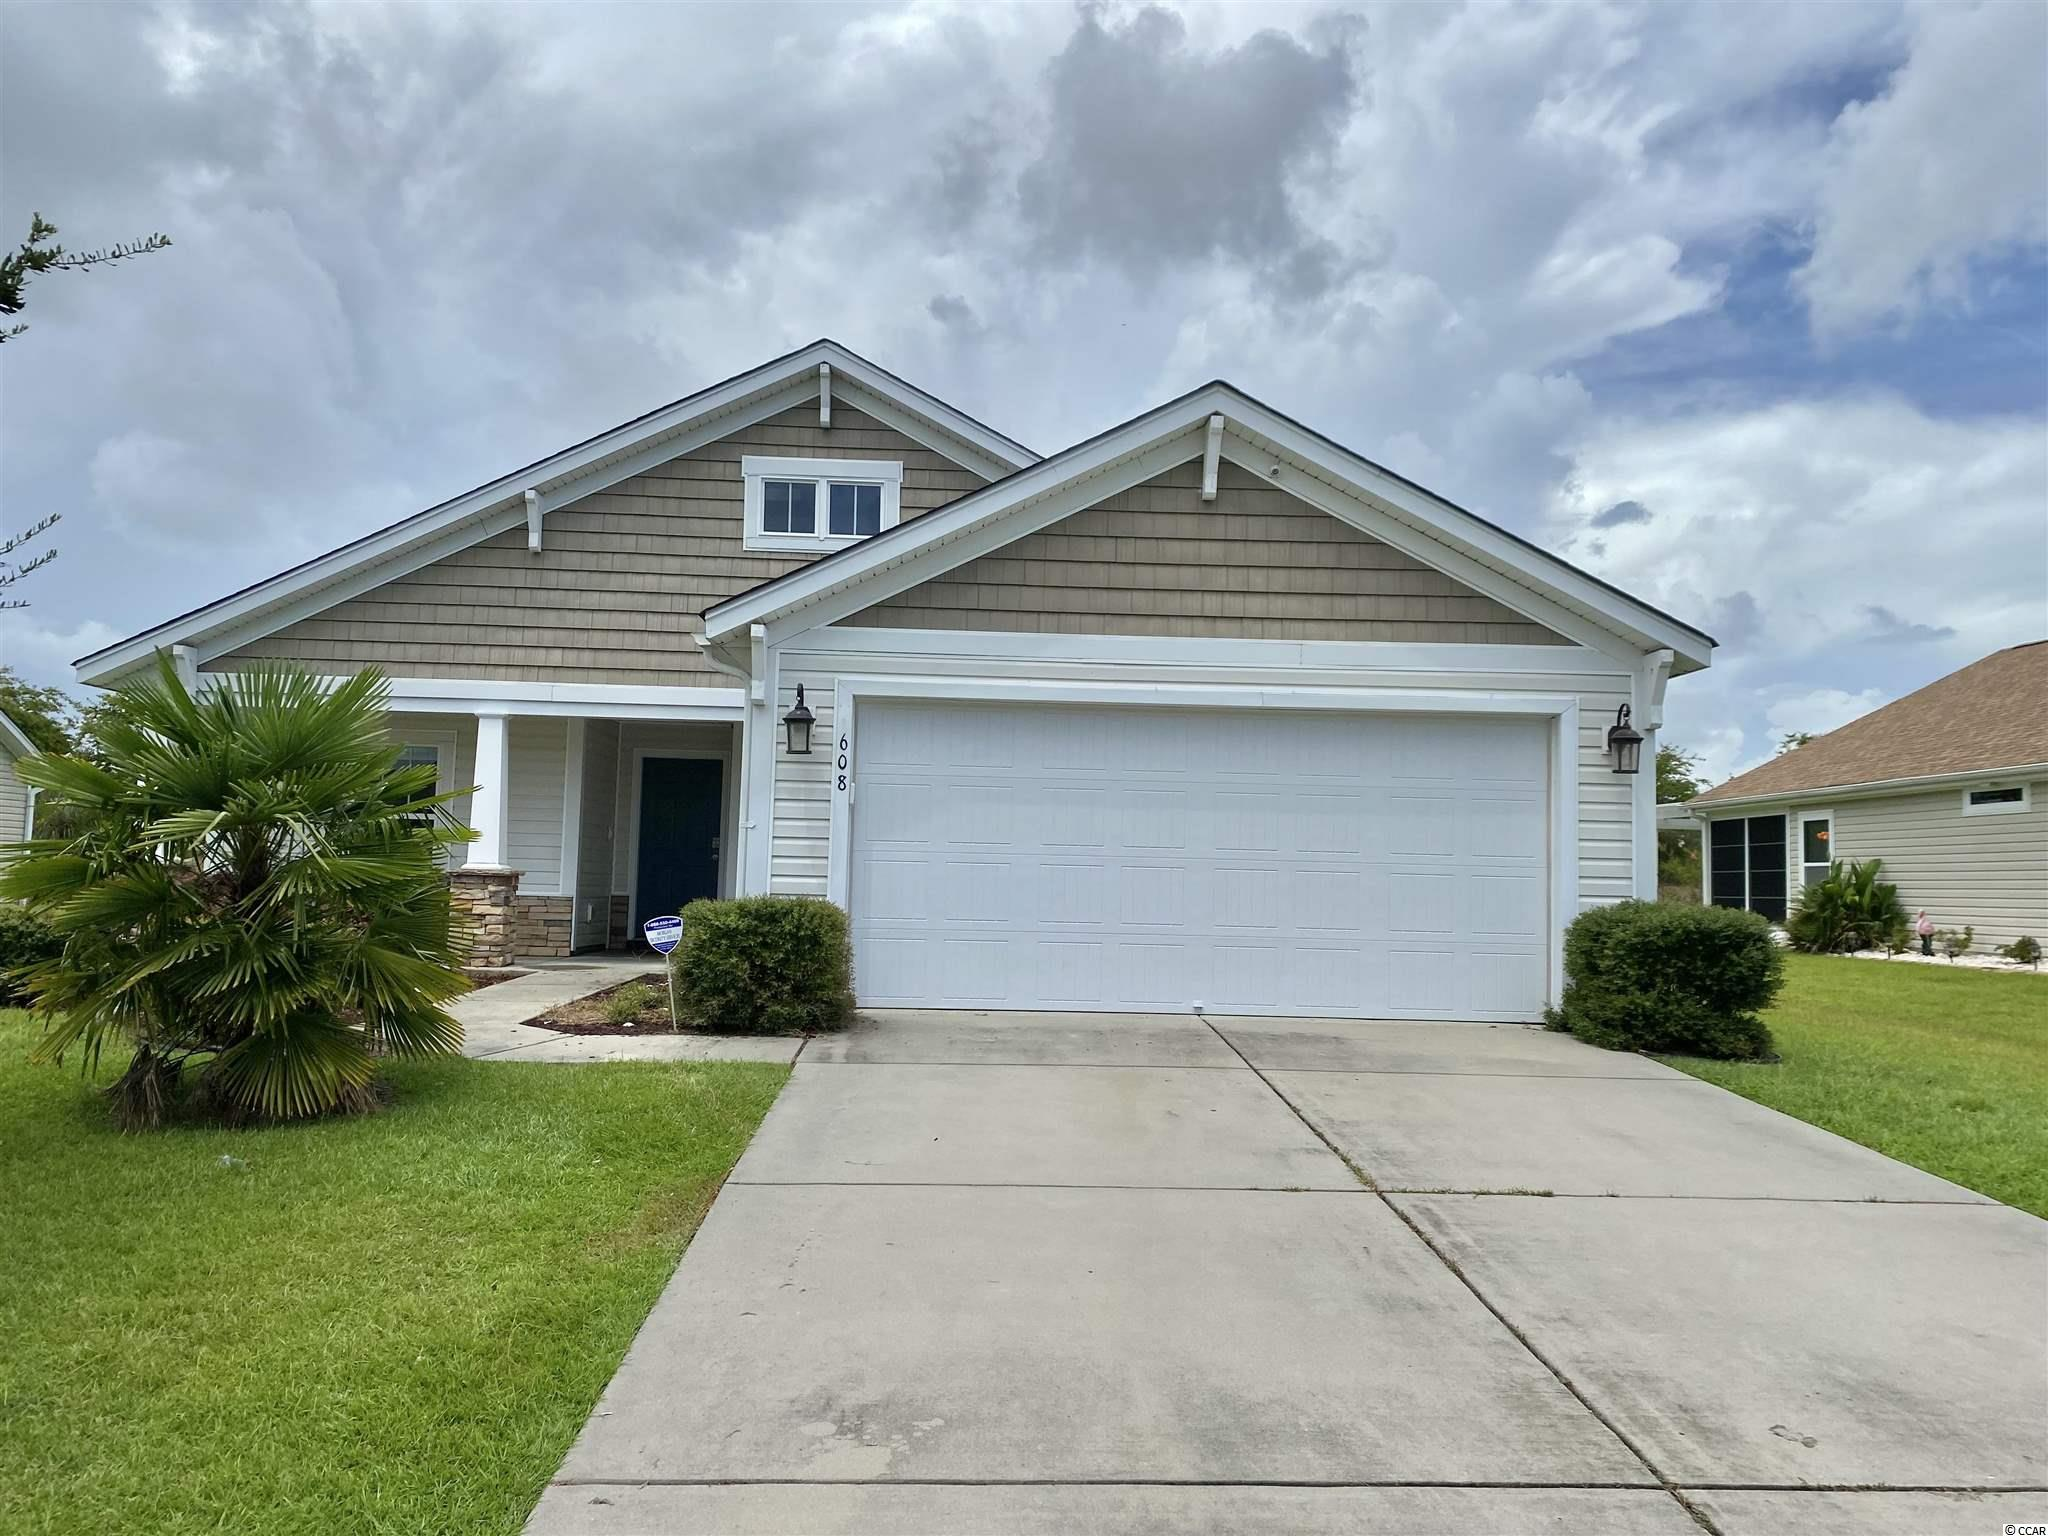 Lafayette Park is a great place to live. Enjoy the community pool and tennis courts just at the end of the street. Just minutes from the sandy beaches of the Atlantic Ocean, shopping, restaurants, and family amusement areas. Many golf courses in the area.